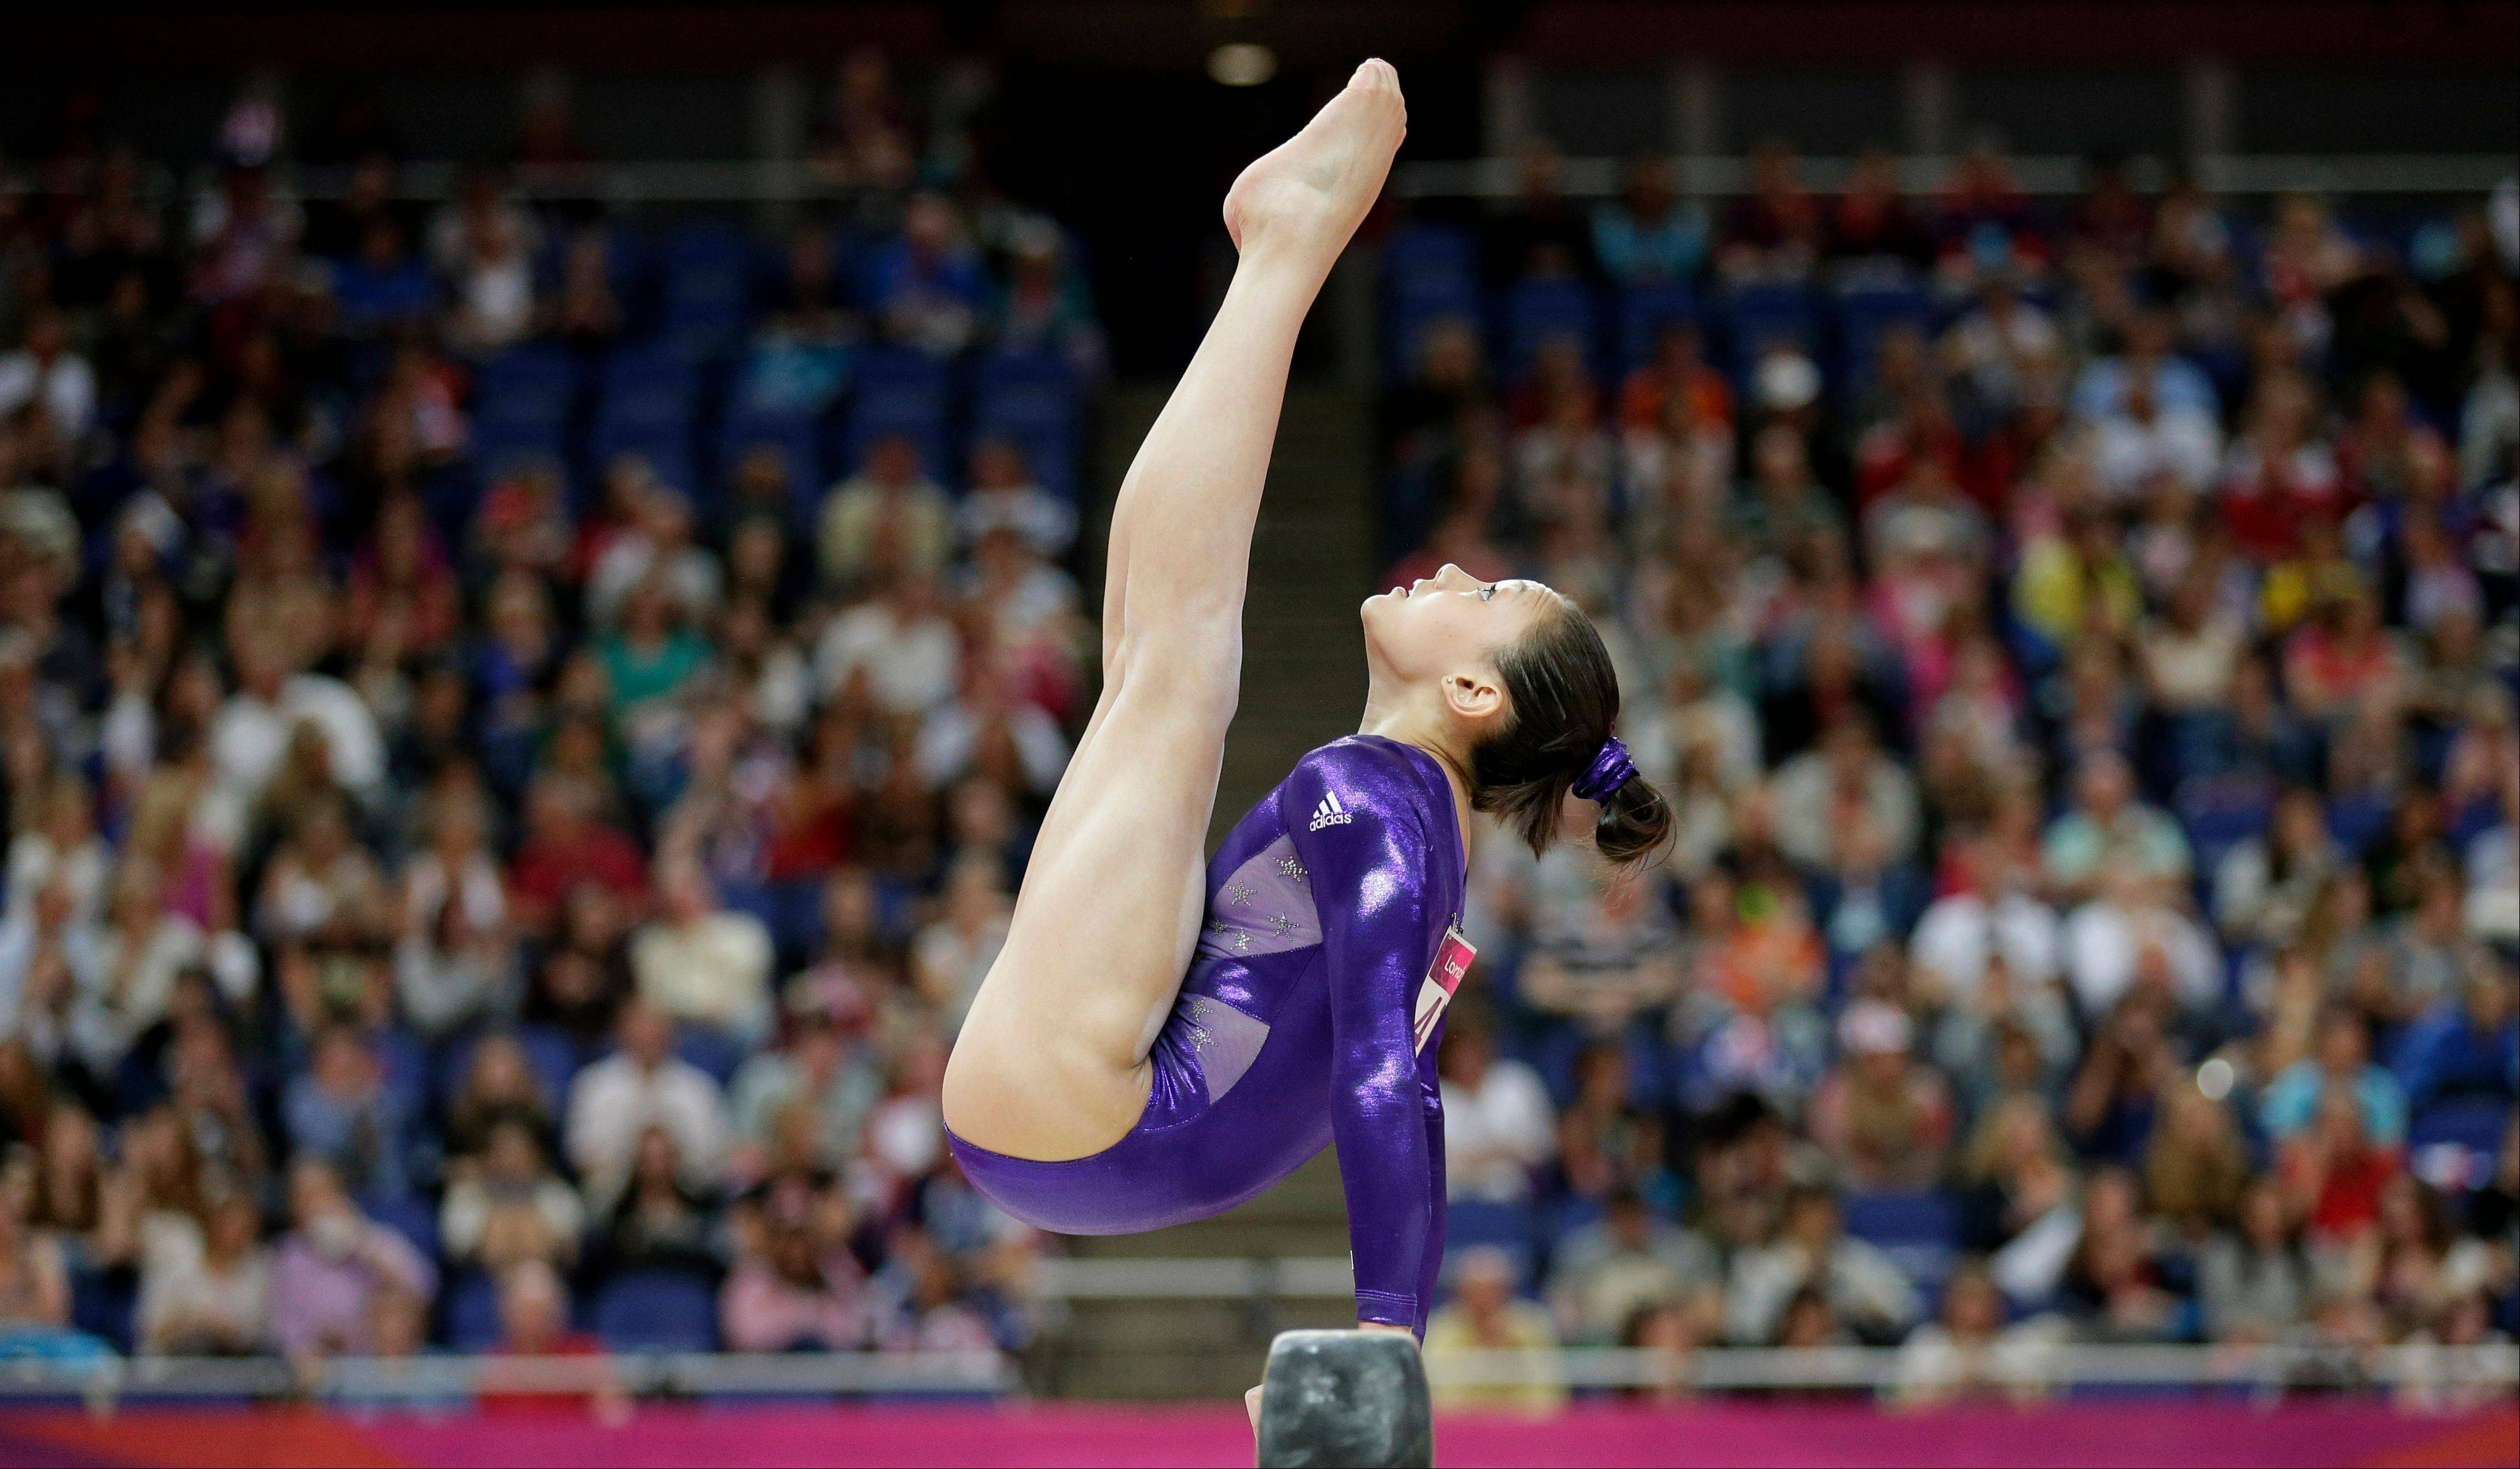 U.S. gymnast Kyla Ross will compete at the 2013 Secret U.S. Classic at the Sears Centre Arena in Hoffman Estates on Saturday, July 27.